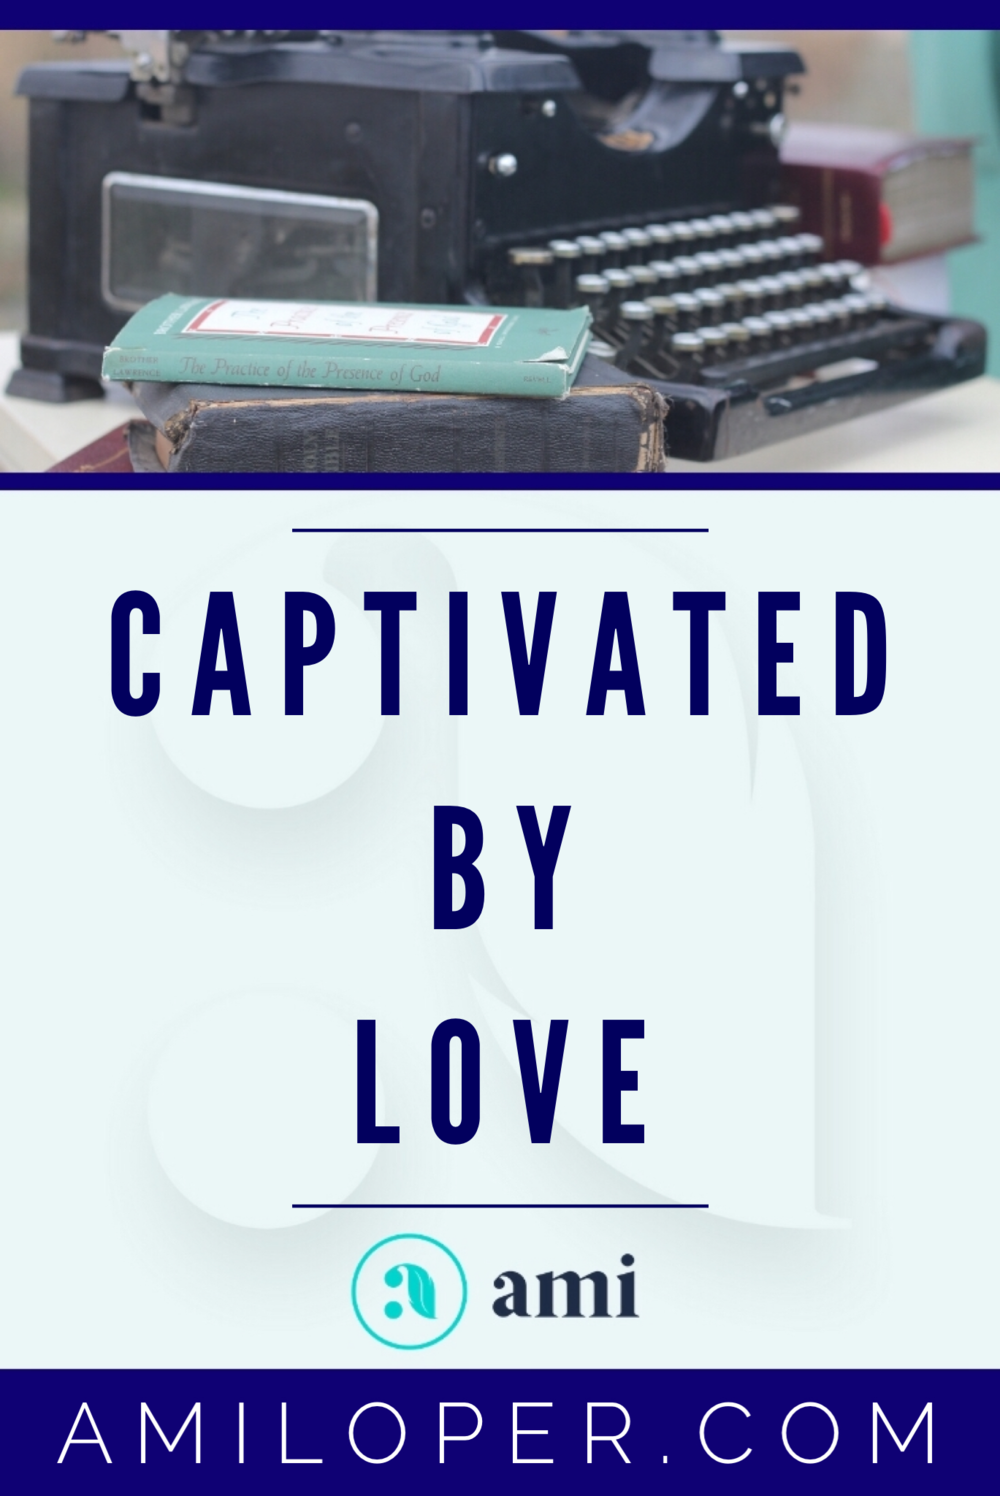 What goes on between a human heart and the heart of God that causes some people to devote their lives to God while others remain on the fringes? And what's the difference between serving God out of duty and serving Him freely? #TrueLove #ChristianBlog